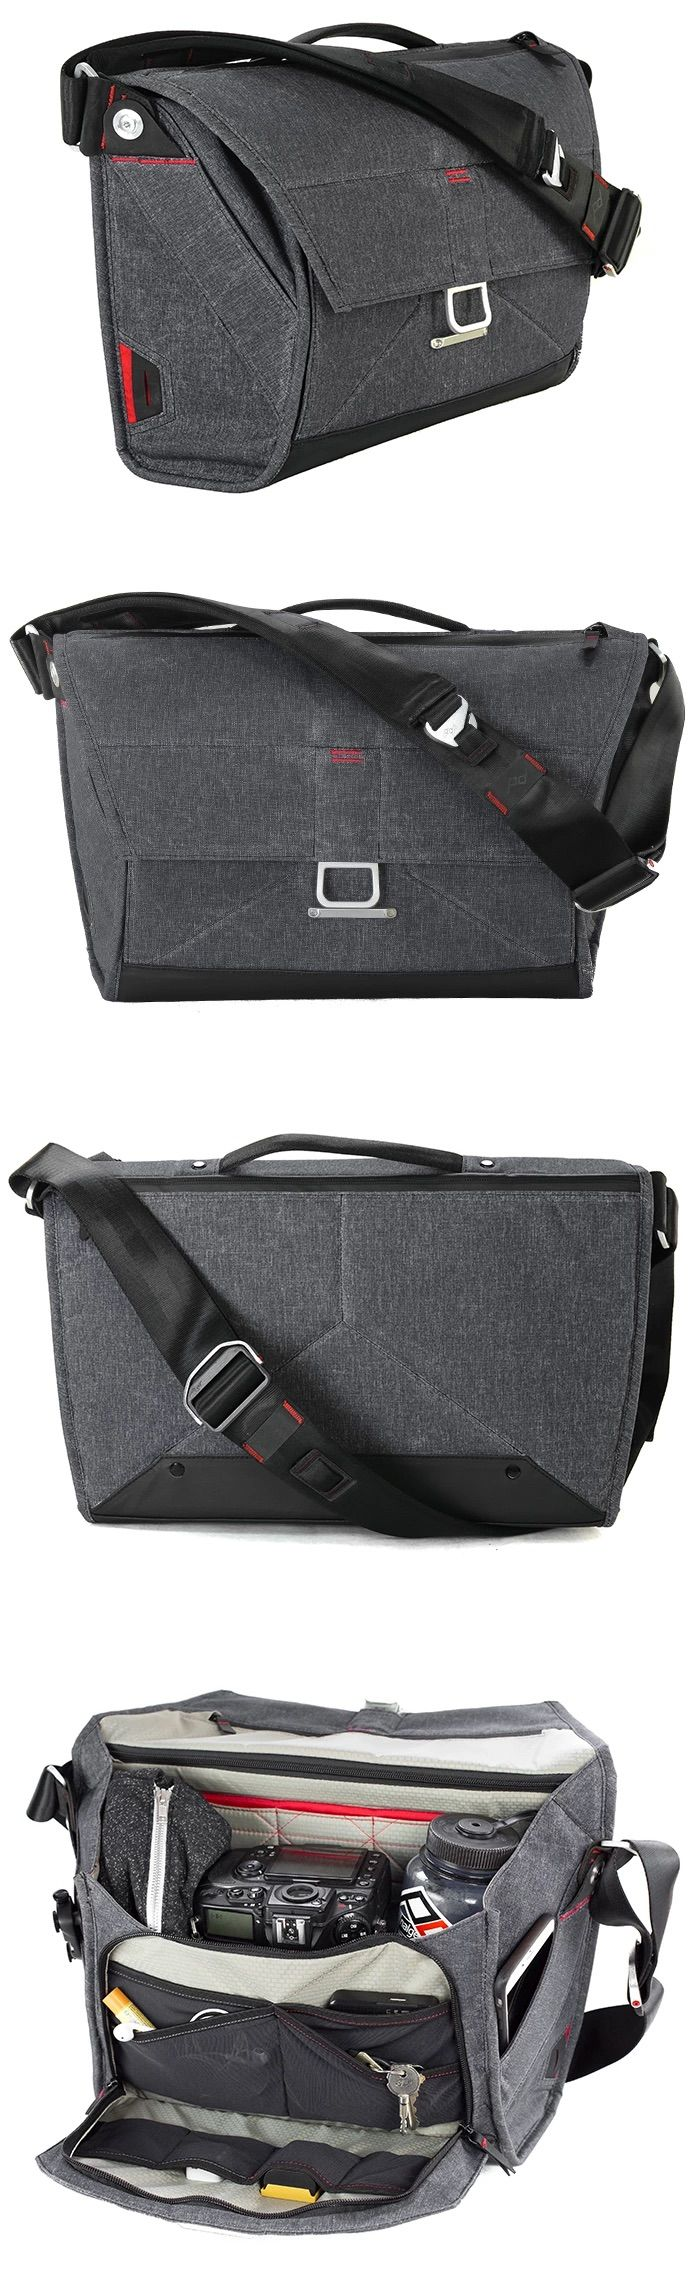 This is the ultimate bag for carrying your life!  I just finished designing it with Peak Design in San Francisco.  See https://www.kickstarter.com/projects/peak-design/the-everyday-messenger-a-bag-for-cameras-and-essen/description for more.